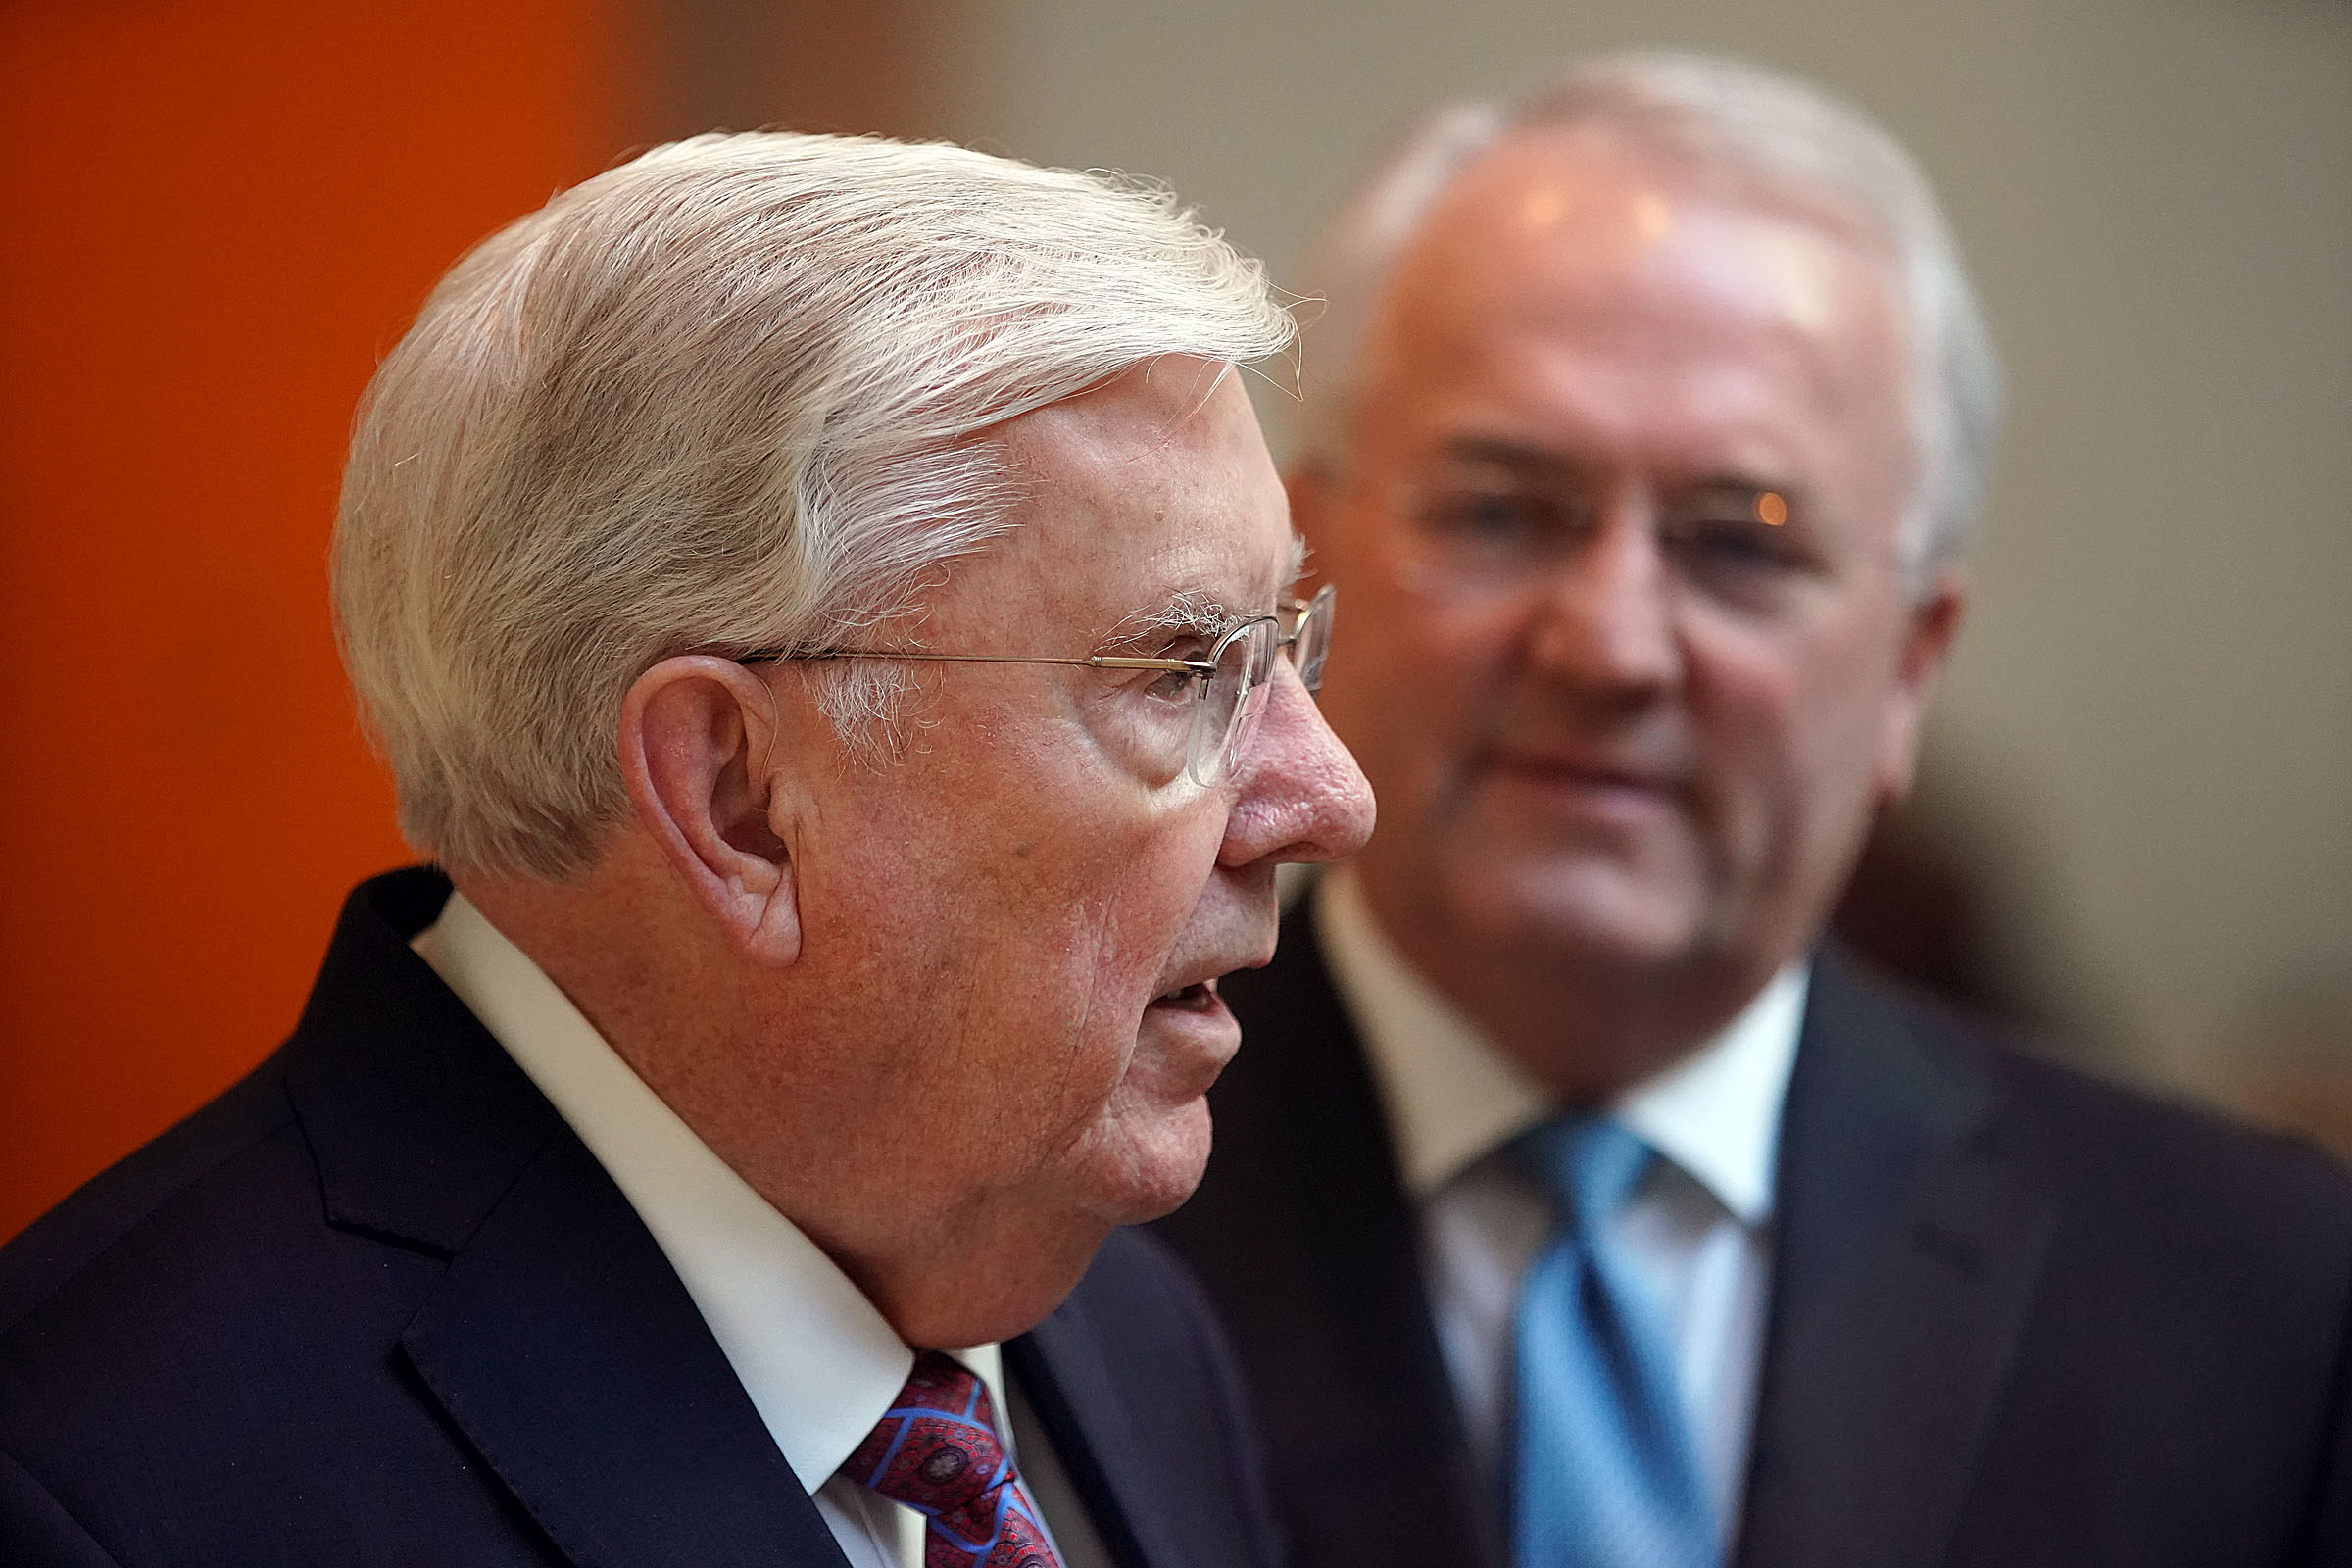 President M. Russell Ballard, left, acting president of the Quorum of the Twelve Apostles, and Elder Jack N. Gerard, General Authority Seventy, of The Church of Jesus Christ of Latter-day Saints, talk with the media following an interview with The New York Times in New York City on Friday, Nov. 15, 2019.